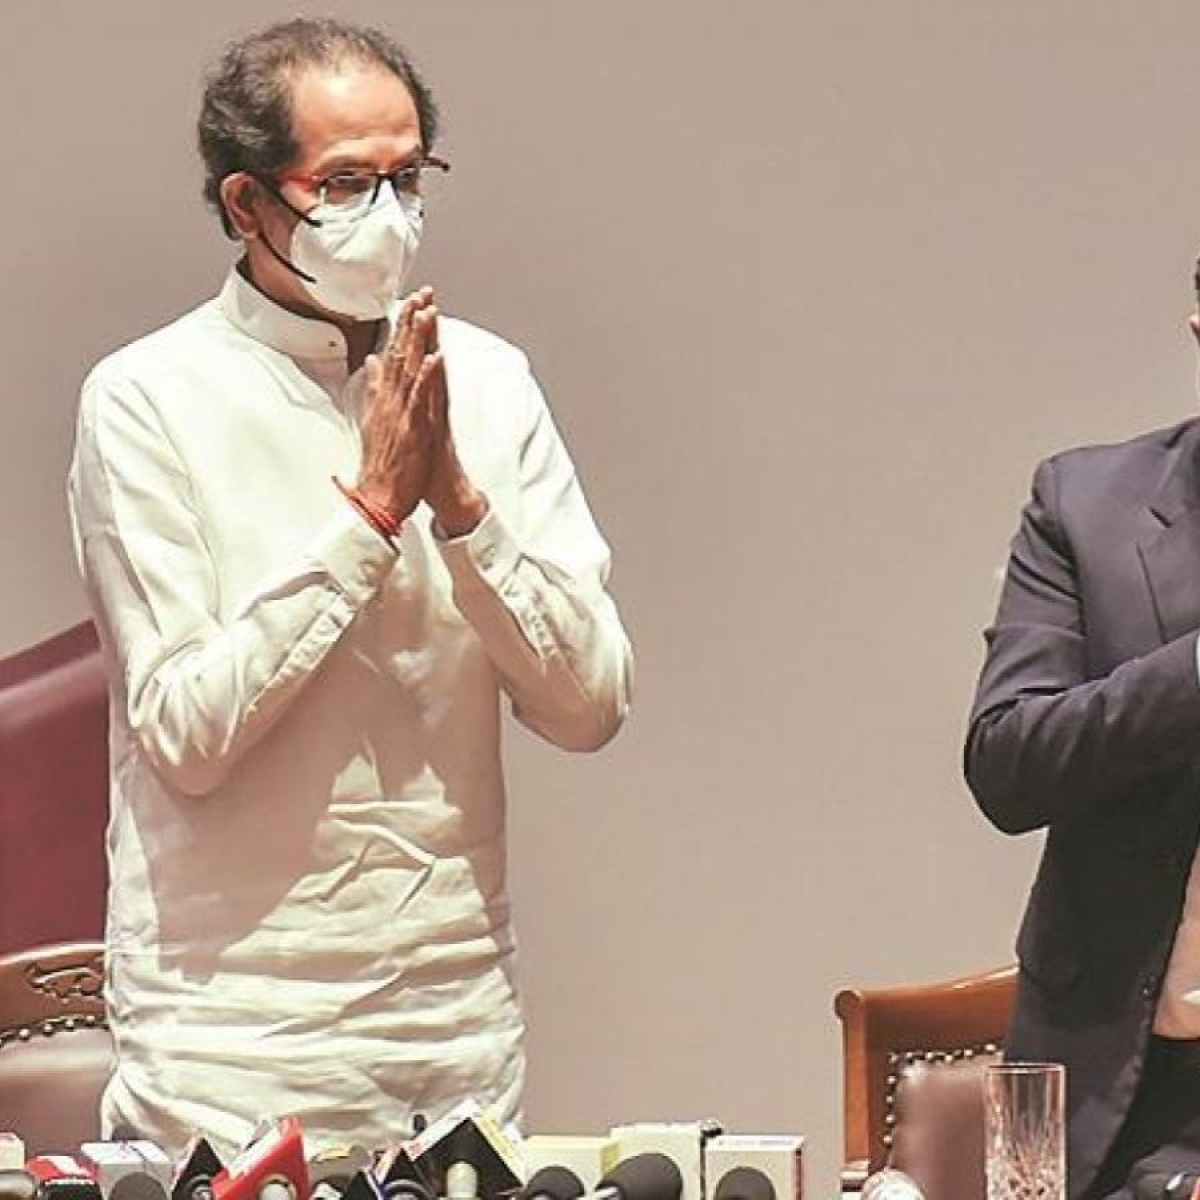 SII CEO Adar Poonawalla has assured 'maximum support' to Maharashtra in scaling up vaccination: Uddhav Thackeray's Office